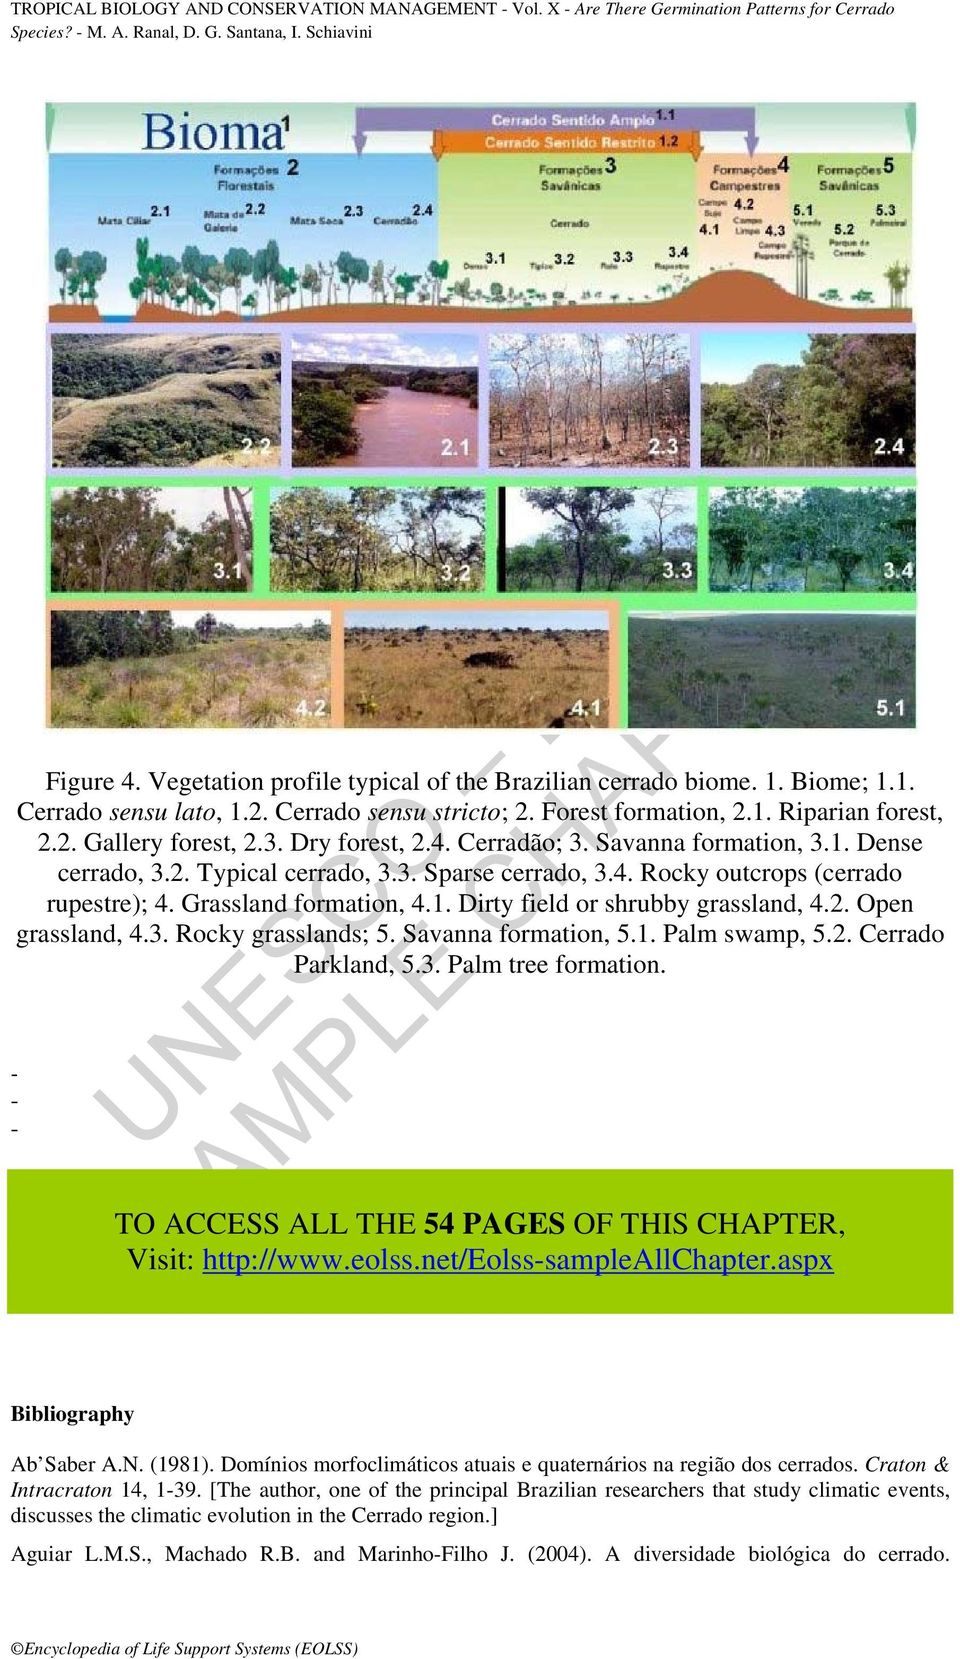 2. Open grassland, 4.3. Rocky grasslands; 5. Savanna formation, 5.1. Palm swamp, 5.2. Cerrado Parkland, 5.3. Palm tree formation. - - - TO ACCESS ALL THE 54 PAGES OF THIS CHAPTER, Visit: http://www.